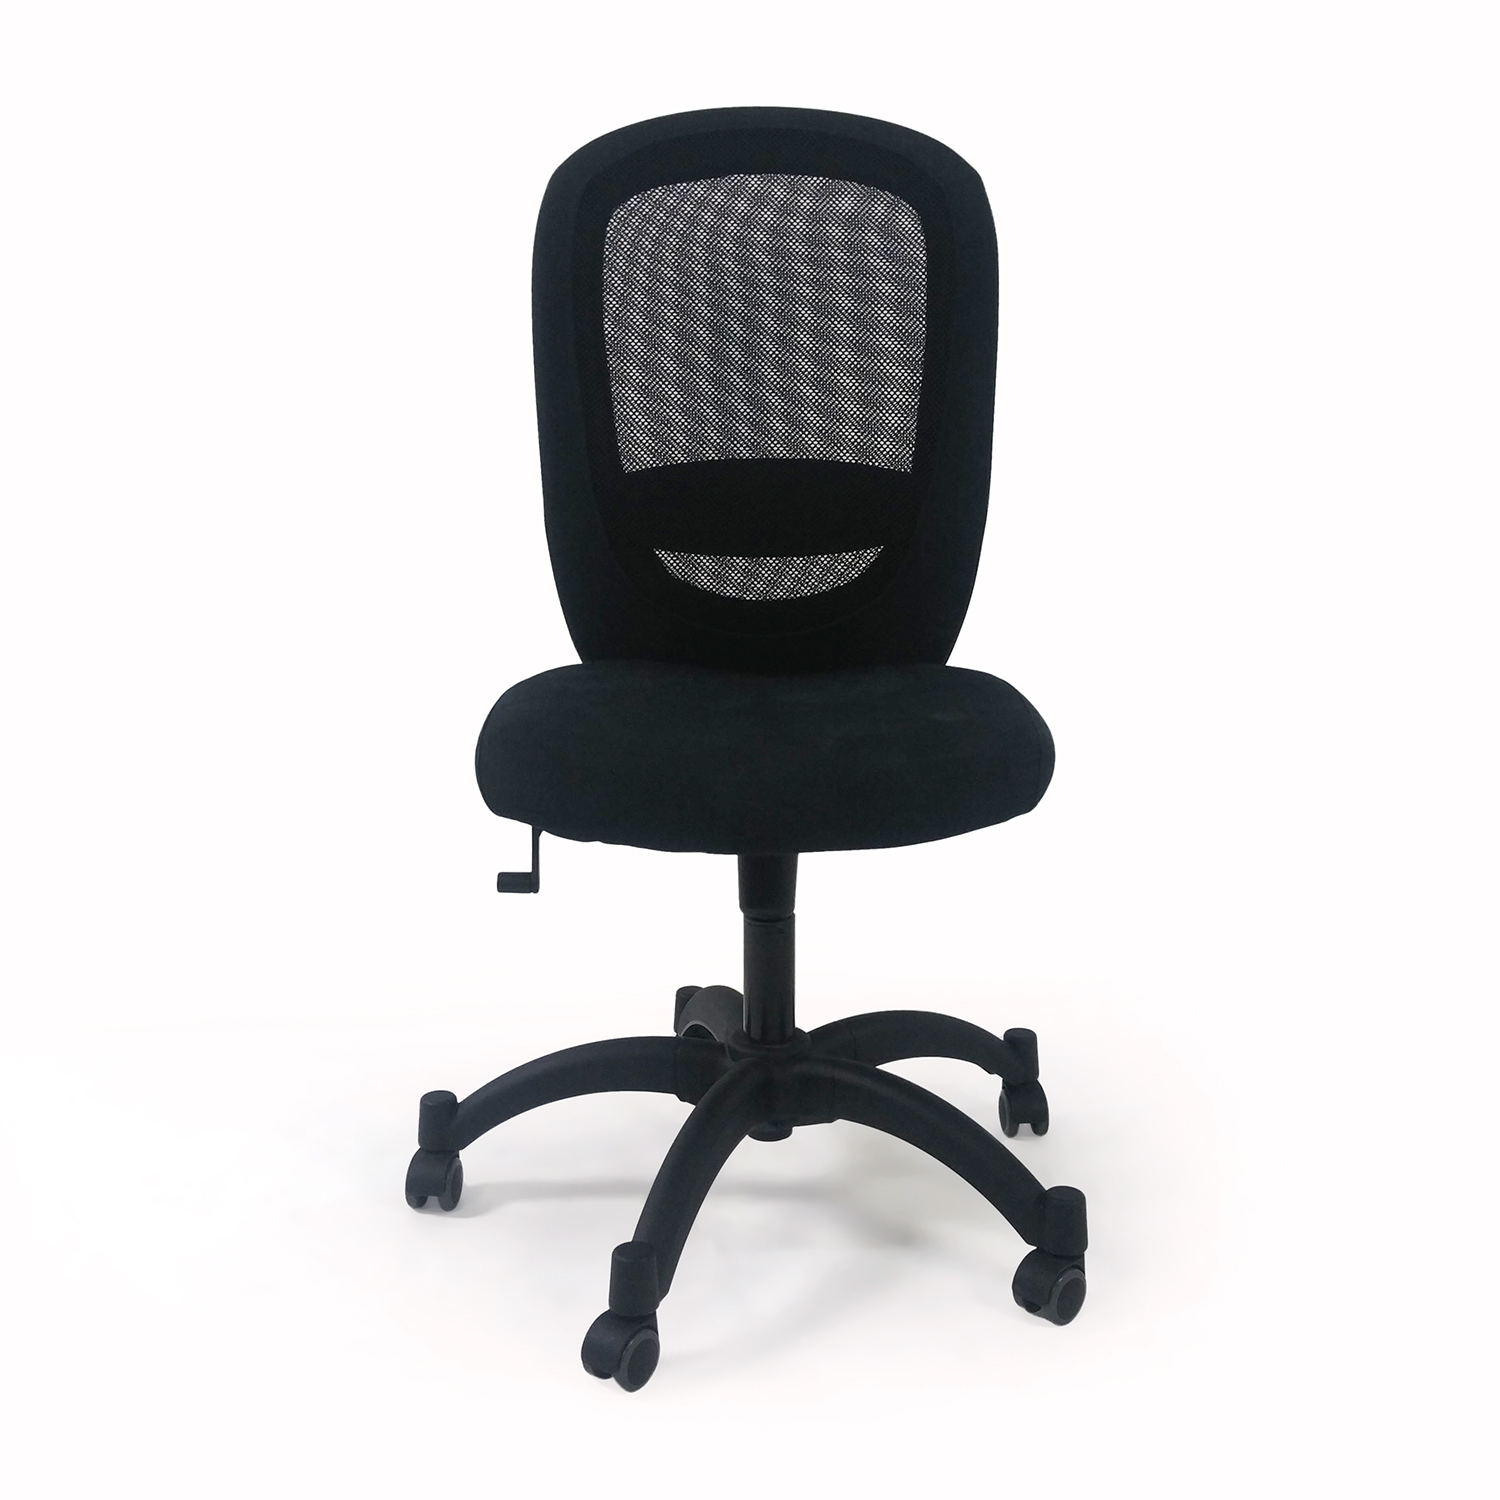 IKEA Black Swivel Chair Black